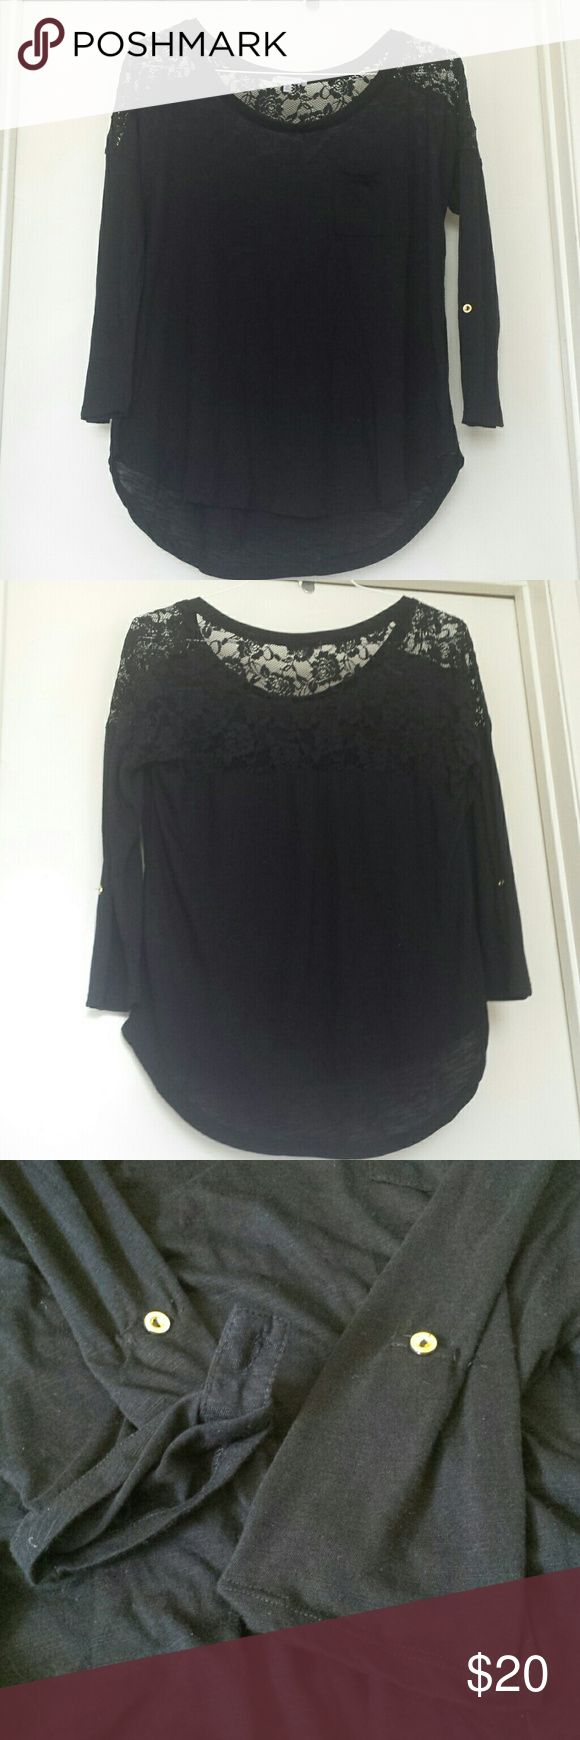 Black Lace Top Black Lace Top with gold buttons to fold sleeves into 3/4 sleeves and button them in place. Super cute top that can be dressed up or down for a casual look. Charlotte Russe Tops